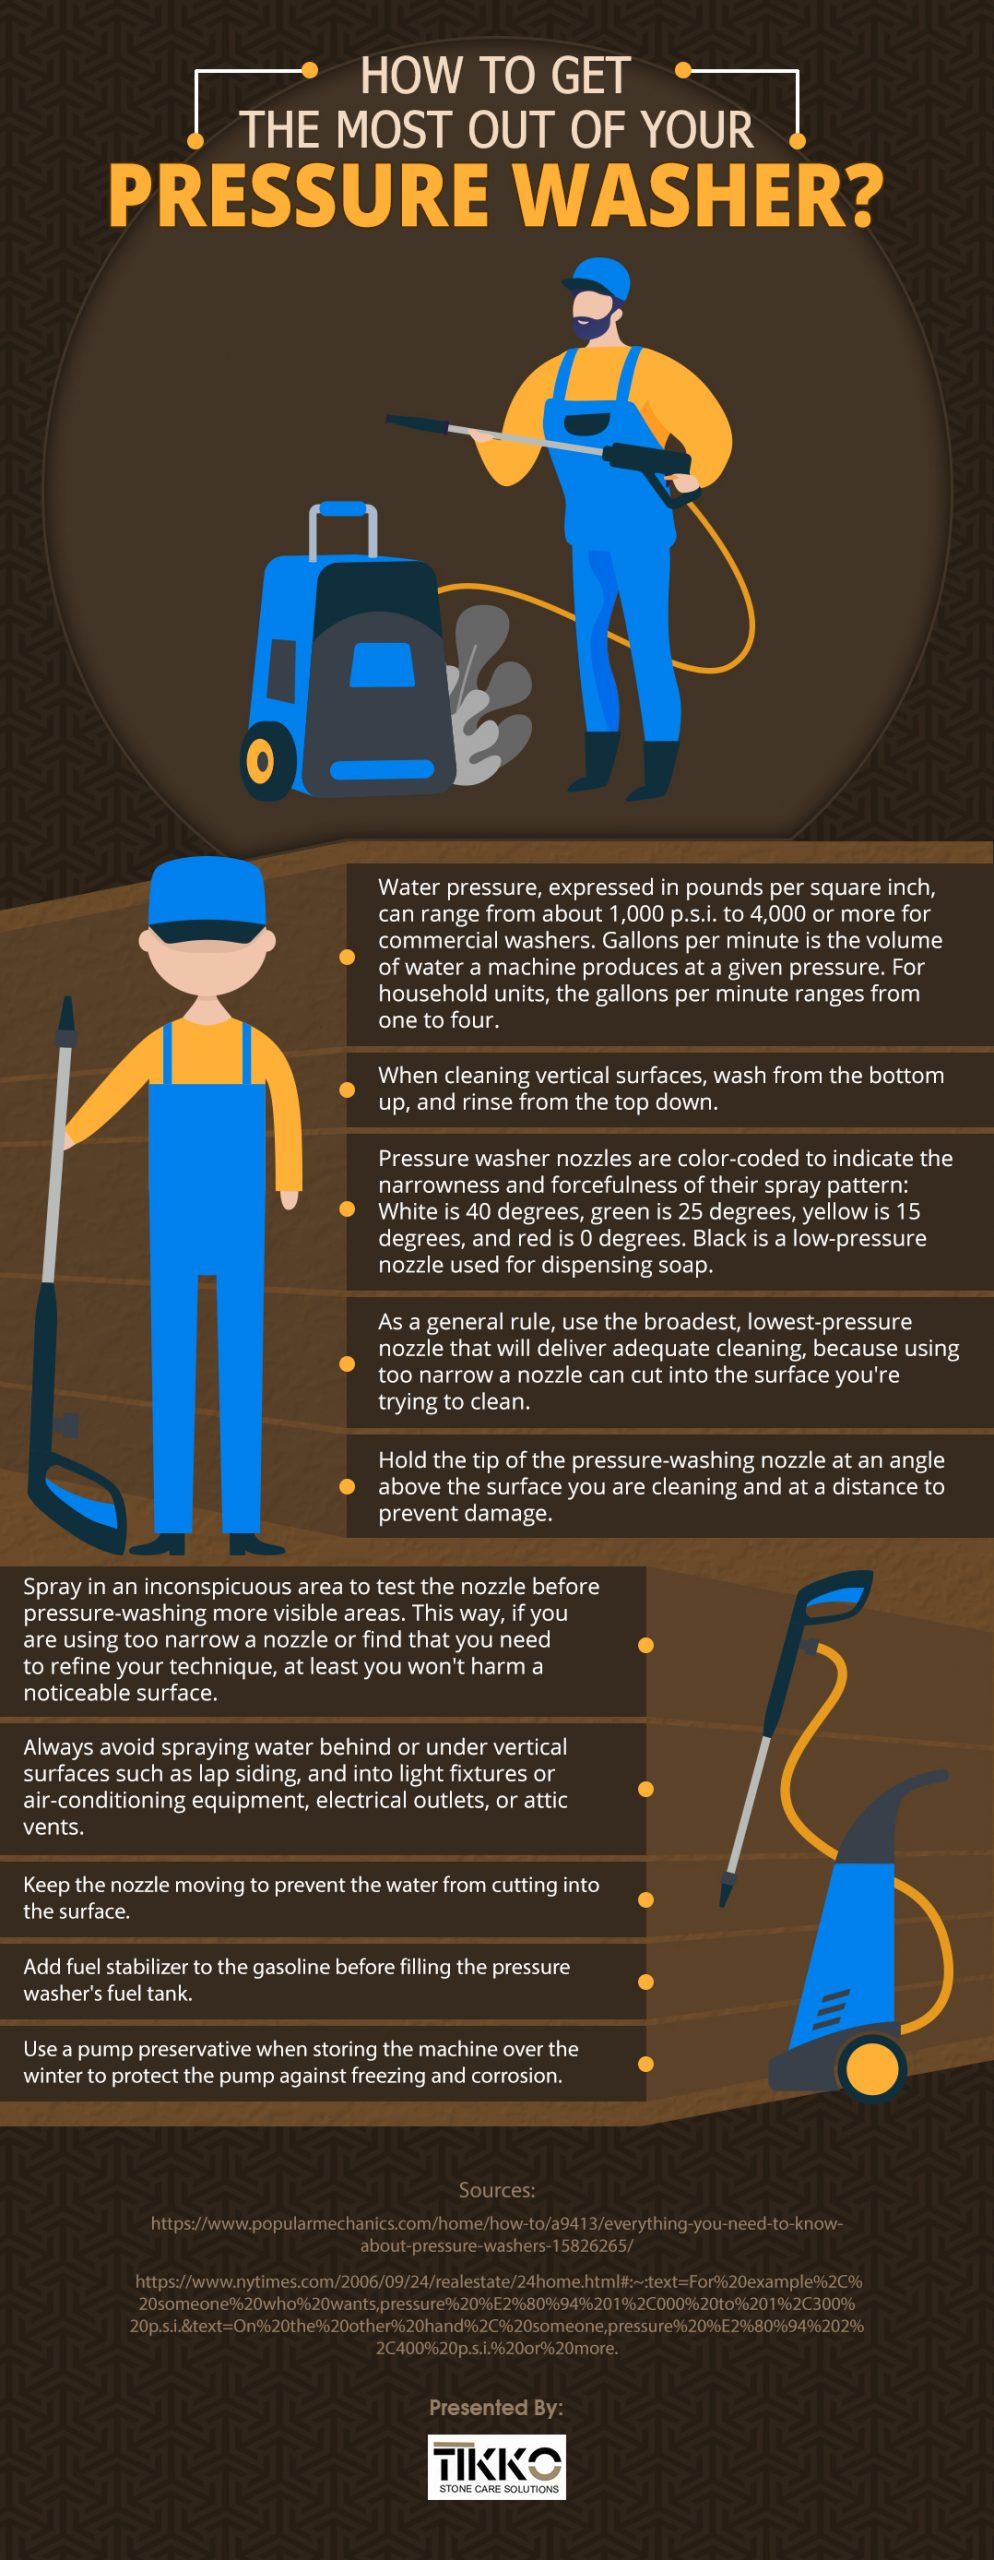 [Infographic] How to get the most out of your pressure washer?